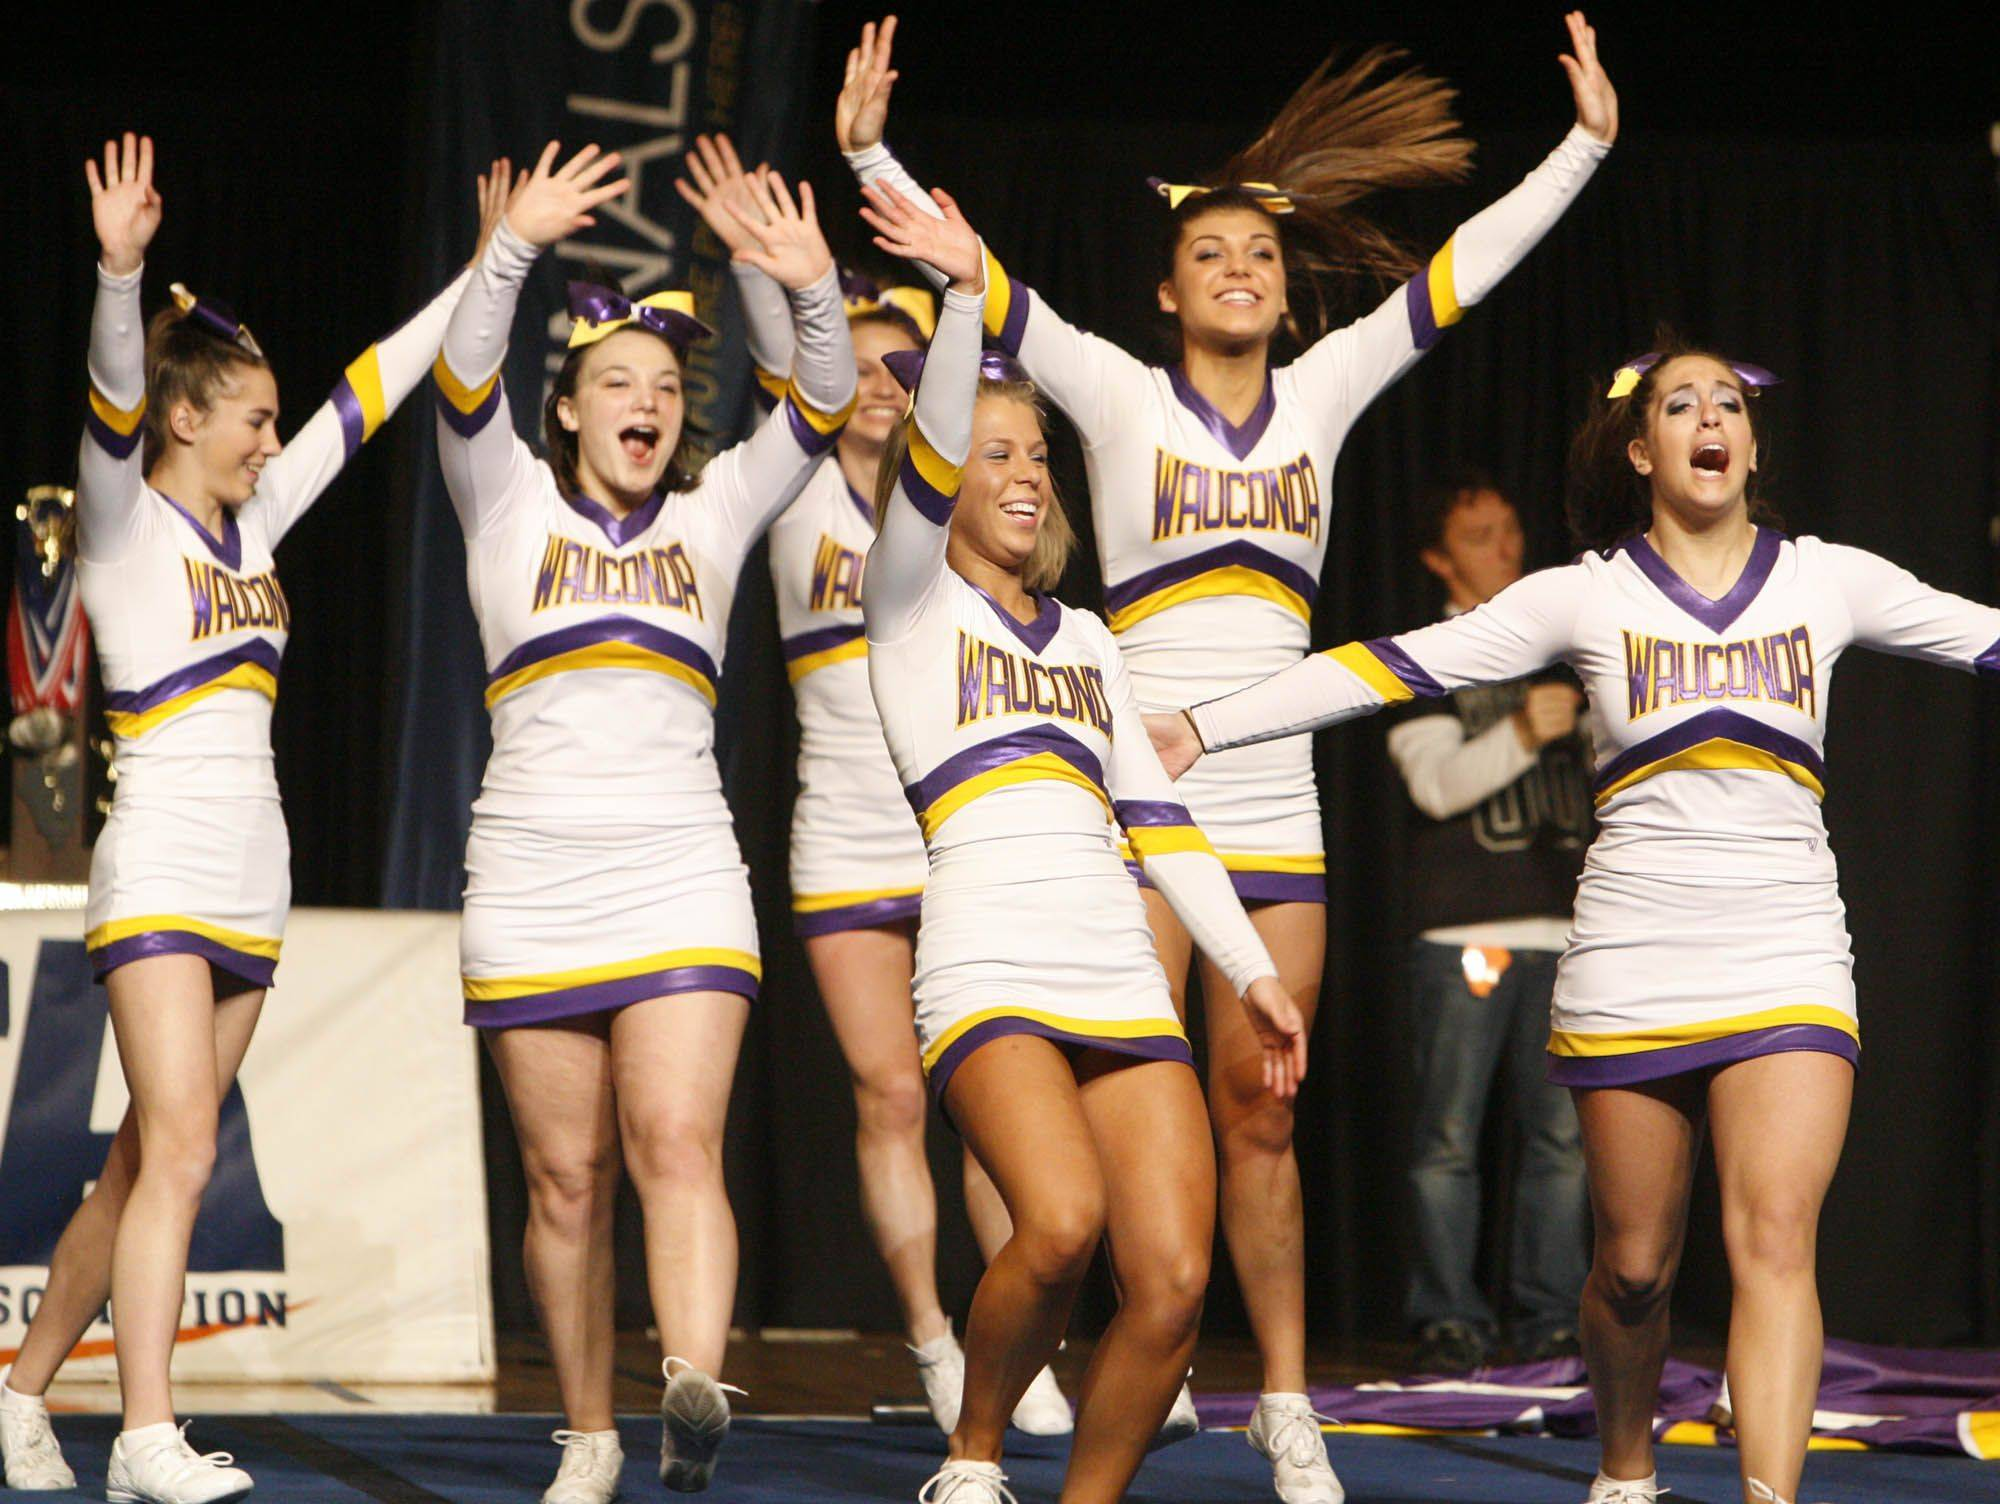 Wauconda competes in the medium team category at IHSA cheerleading state finals at U.S. Cellular Coliseum in Bloomington on Saturday, February 4th.